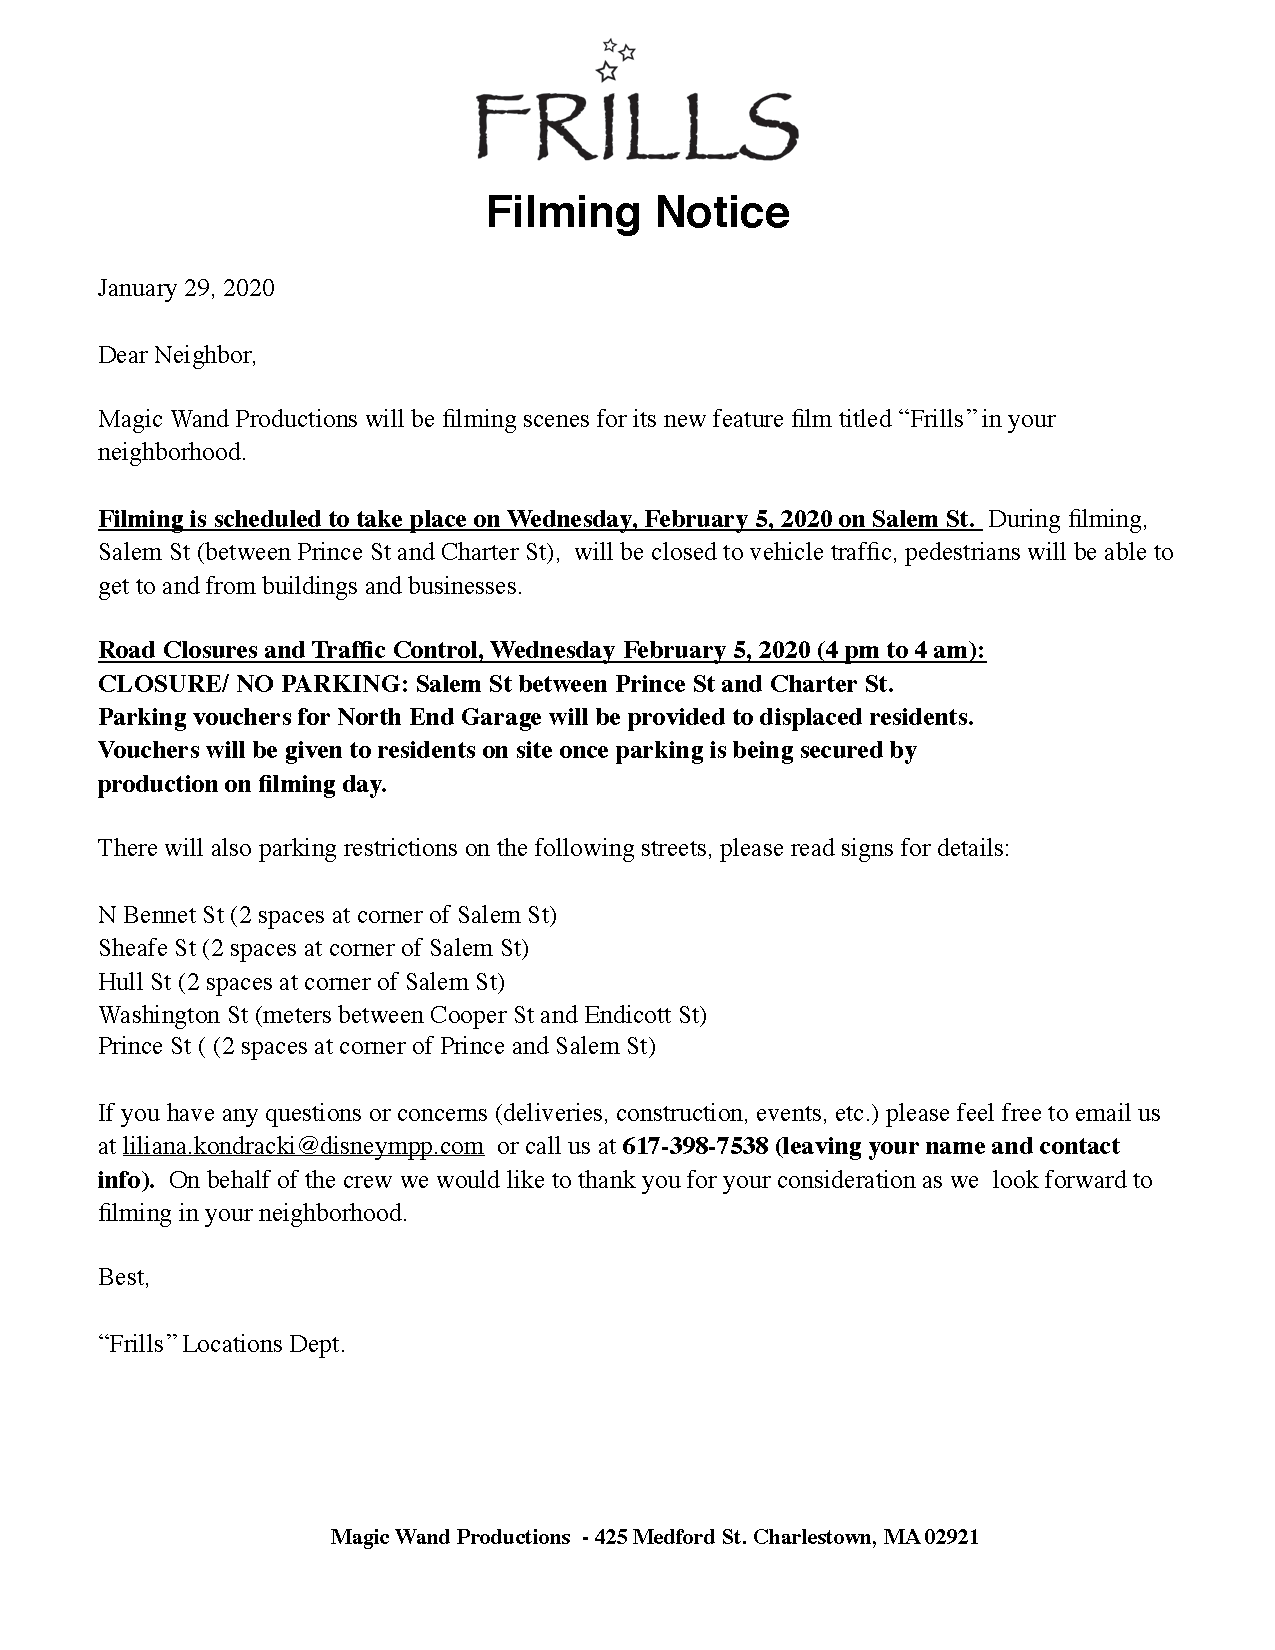 """Filming for """"Frills"""" Feb. 3–5 on Salem St. and North Square"""